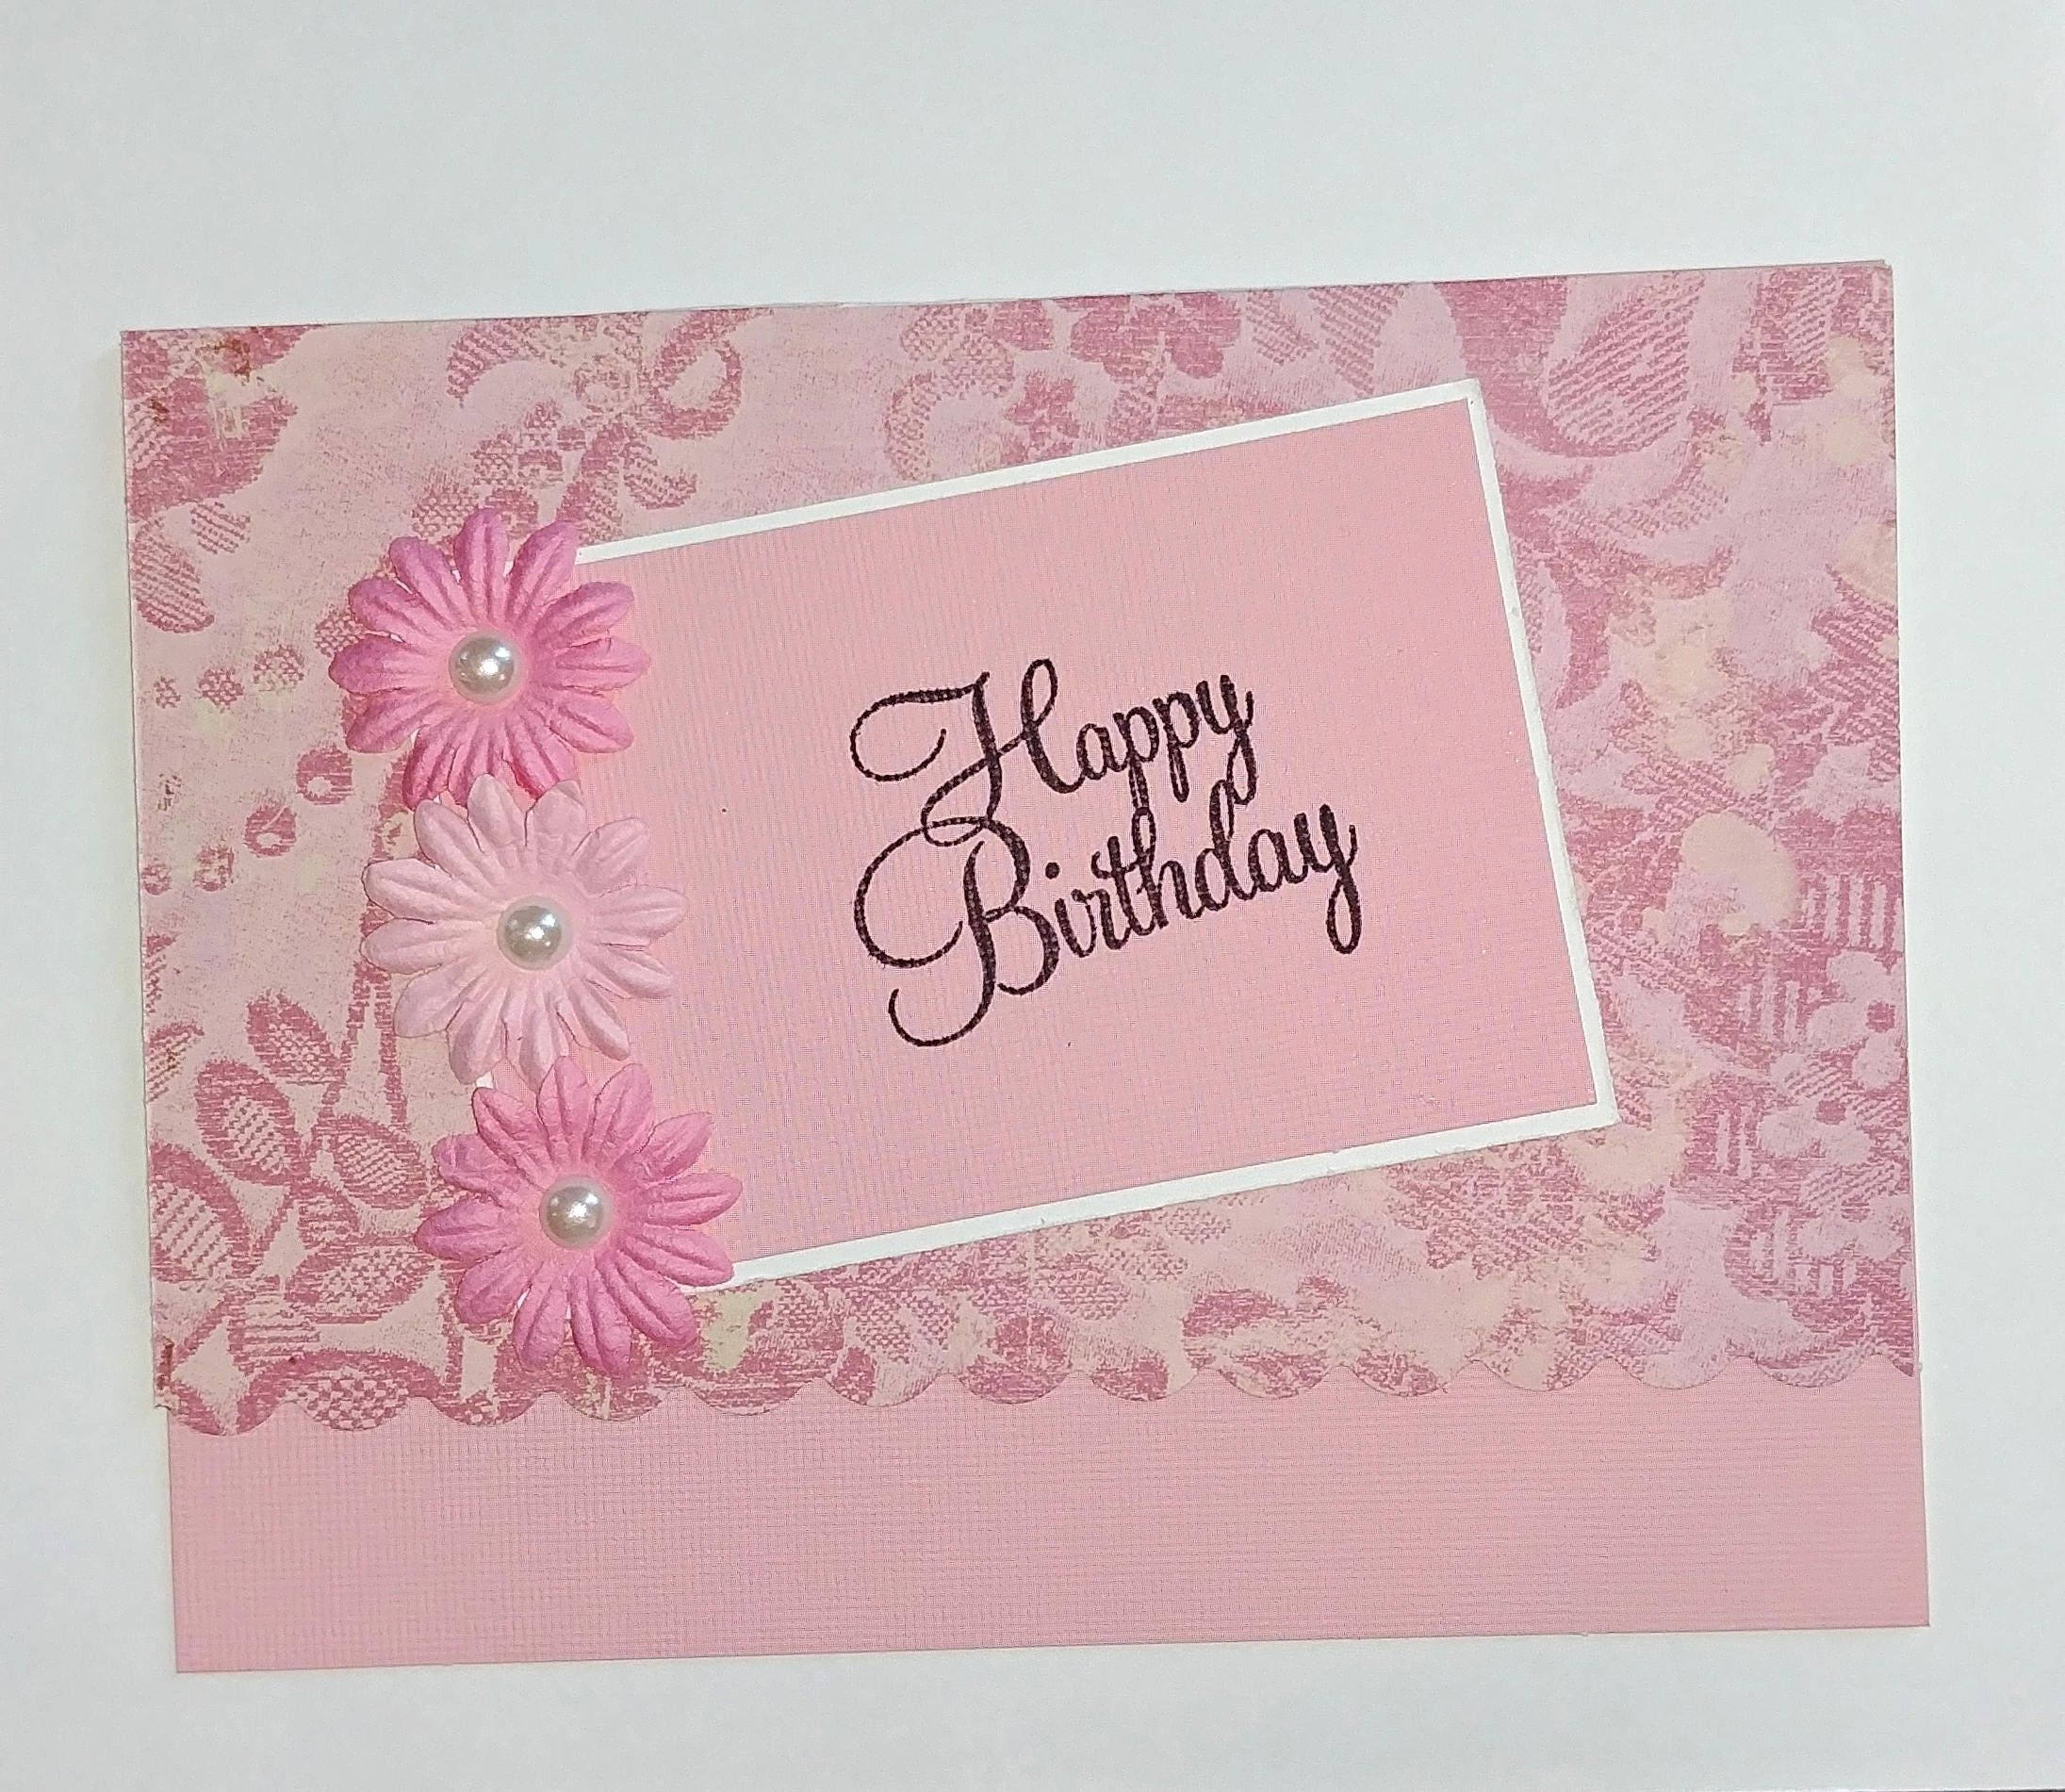 Happy birthday birthday wishes celebrate pretty card for zoom kristyandbryce Image collections